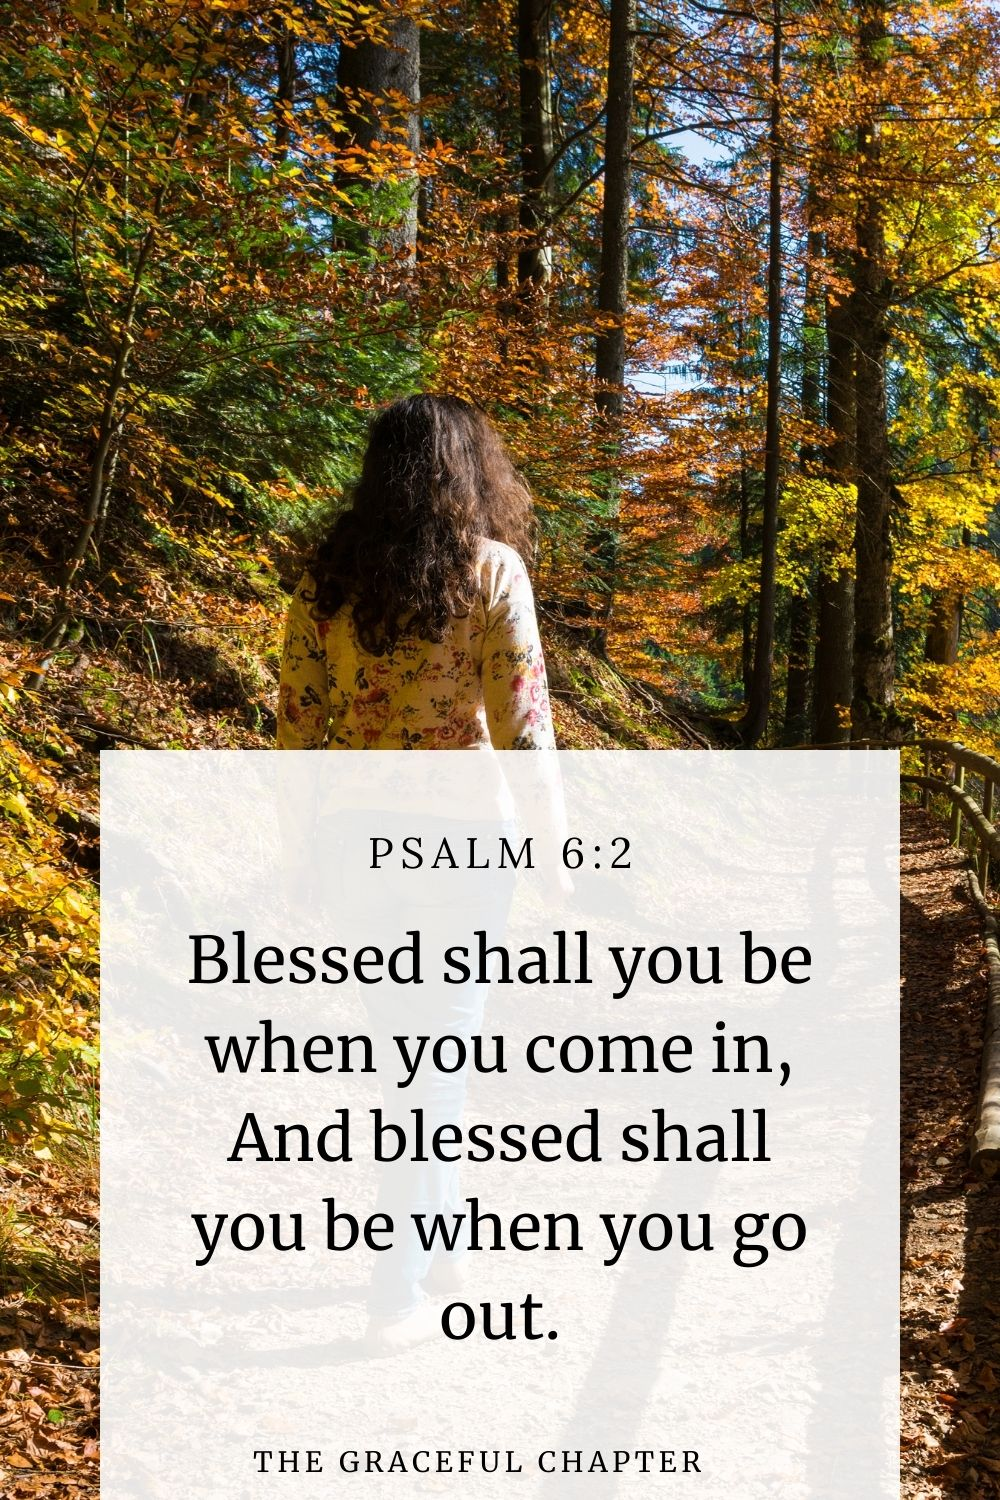 Blessed shall you be when you come in, And blessed shall you be when you go out. Deuteronomy 28:6